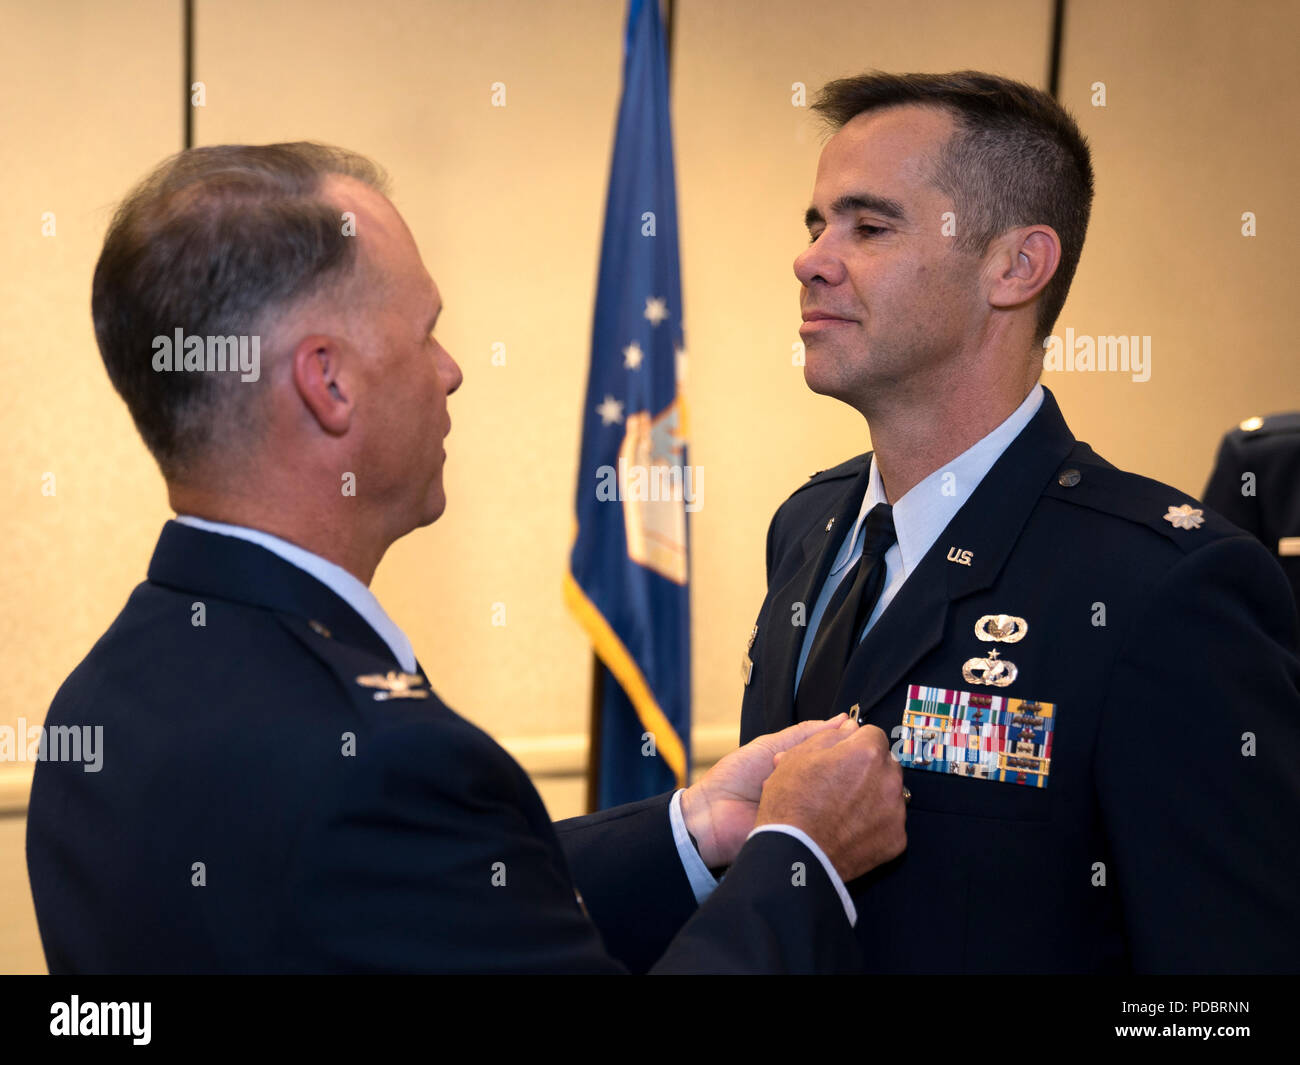 Col. Stephen Lanier, 315th Operations Group commander, presents a Meritorious Service Medal to Lt. Col. Hamilton Underwood, 4th Combat Camera Squadron commander, during a change of command ceremony Aug. 3, 2018, at Joint Base Charleston, S.C. The 4th CTCS is the only Reserve combat camera unit and is a rapid response force, specializing in aerial documentation. Underwood served as the 4th CTCS commander from 2014 to 2015, and again from 2017 to 2018 after the unit reactivated. (U.S. Air Force photo by Tech. Sgt. Jamal D. Sutter) Stock Photo